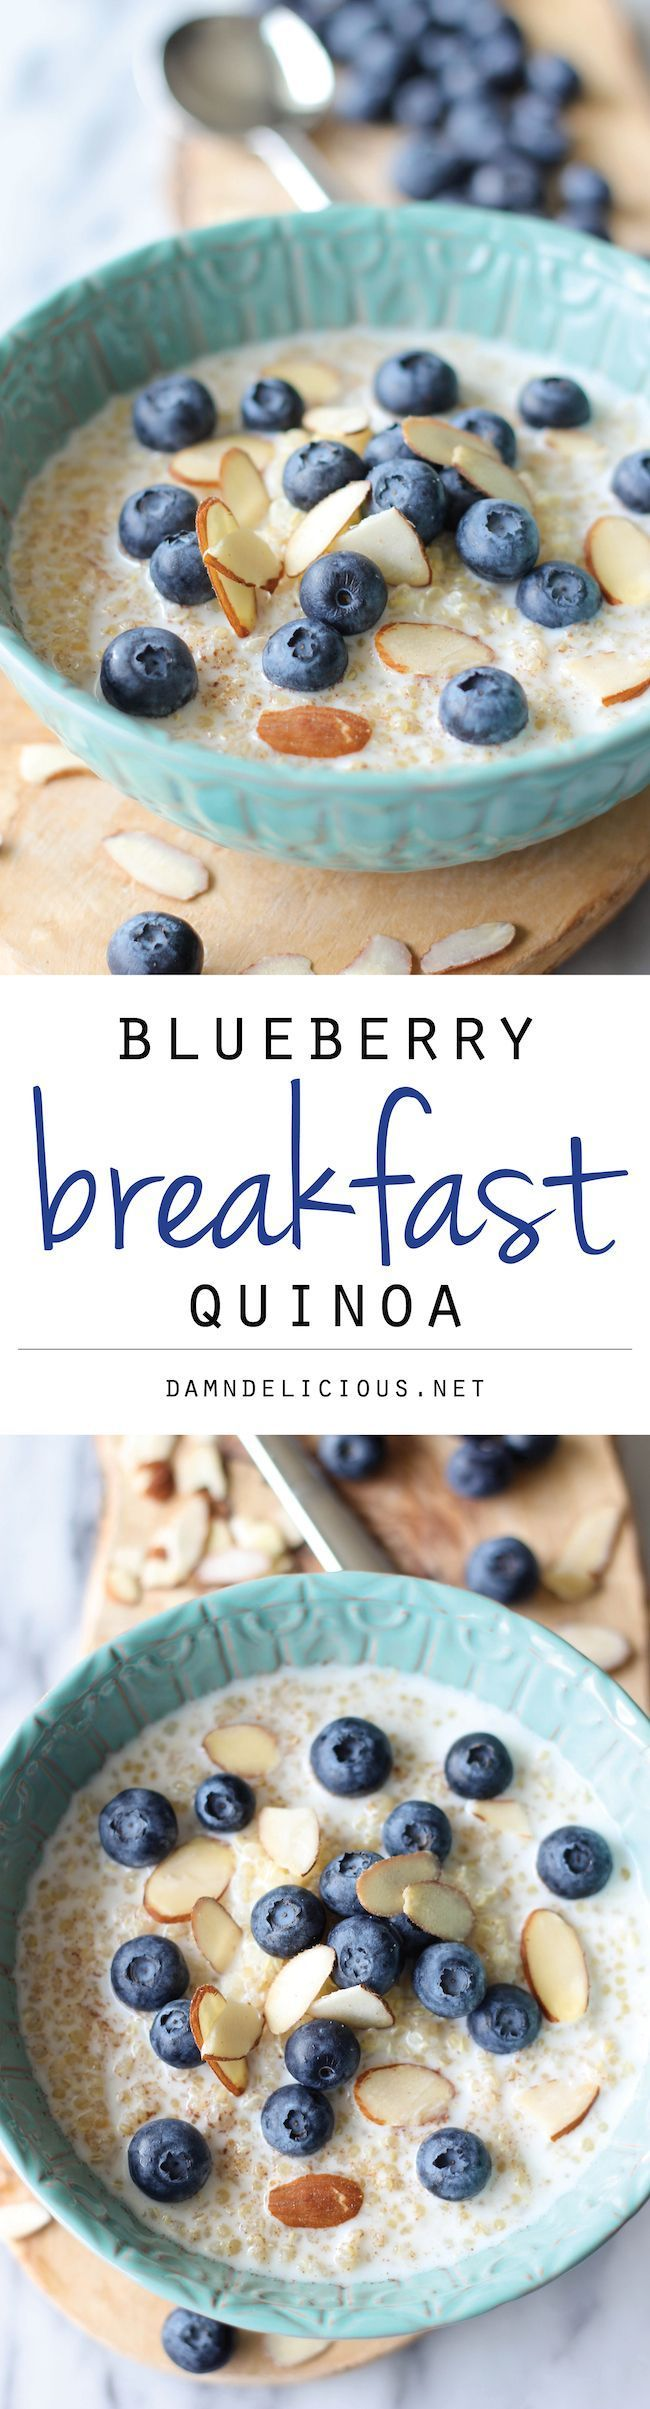 Blueberry Breakfast Quinoa - Start your day off right with this protein-packed quinoa breakfast bowl with a touch of tart sweetness from fresh blueberries and a drizzle of honey!